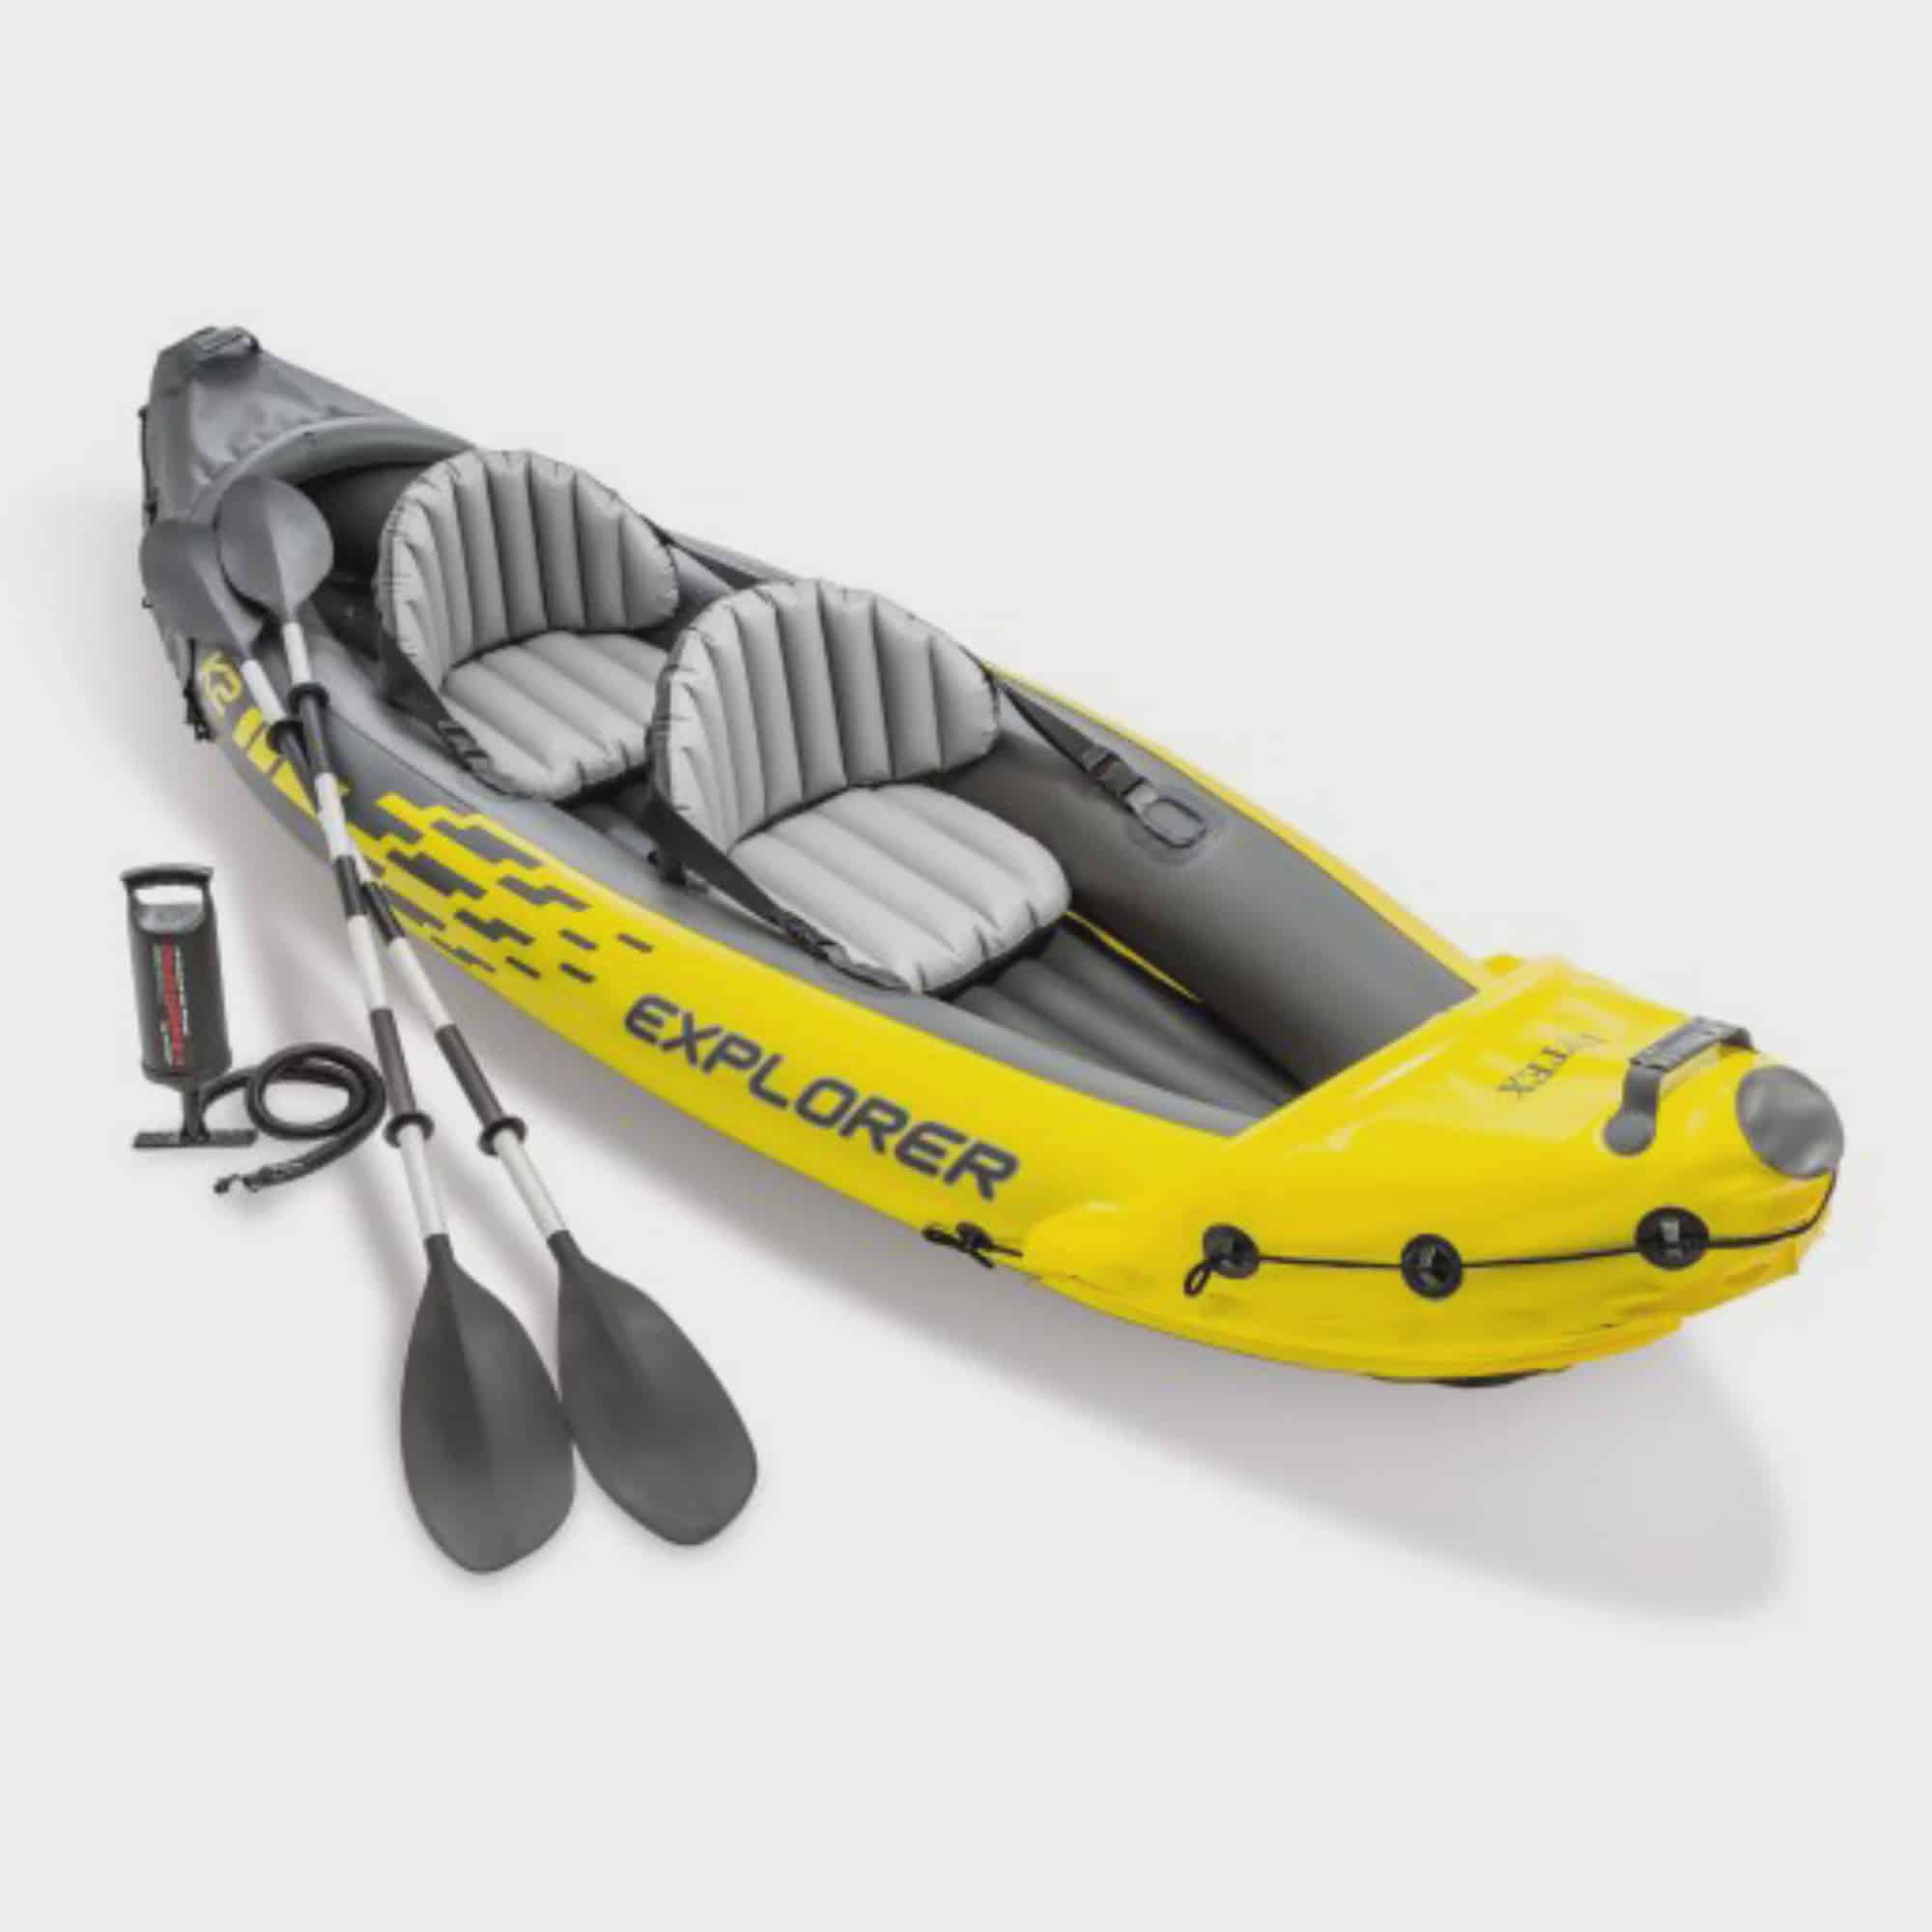 Intex Explorer K2 Inflatable Kayak with Oars and Hand Pump by Intex